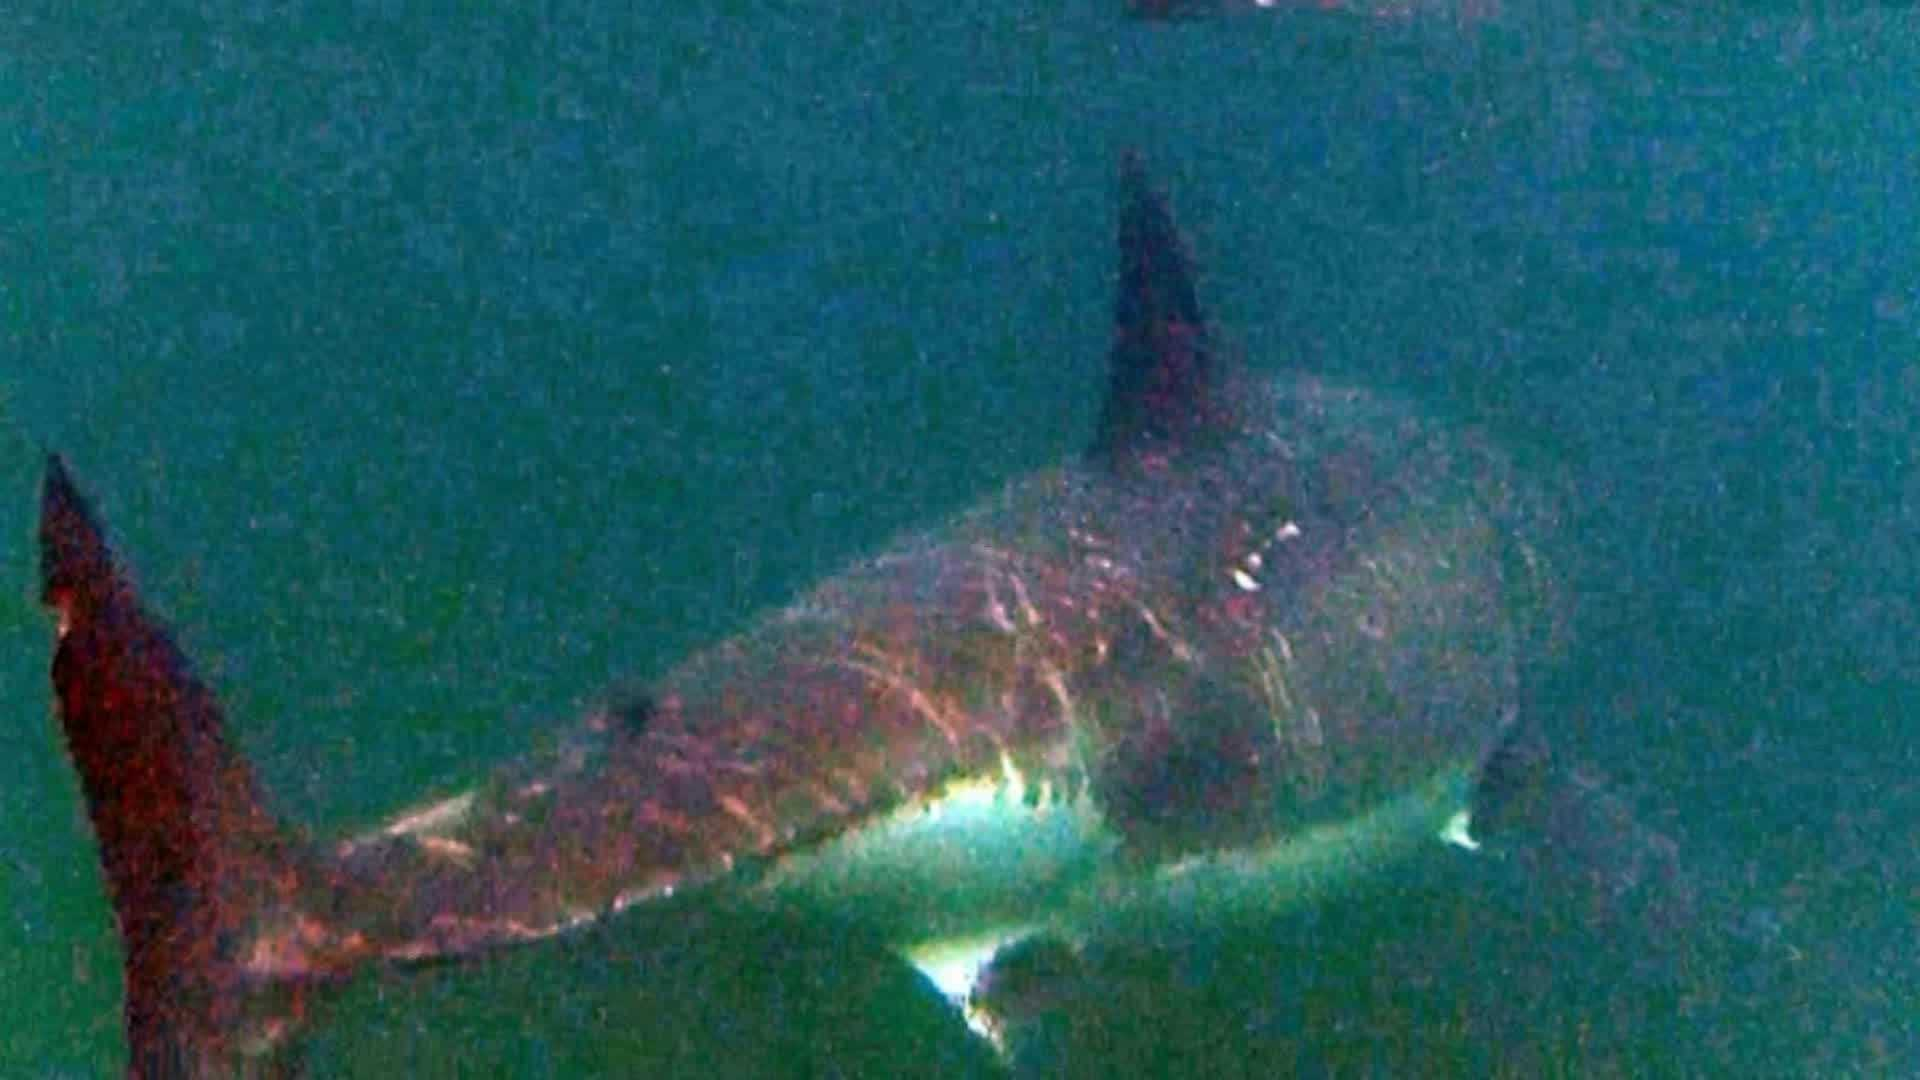 A Lancaster couple was out boating Thursday when they met up with the great white off Race Point.  Video:  Tom Zoller